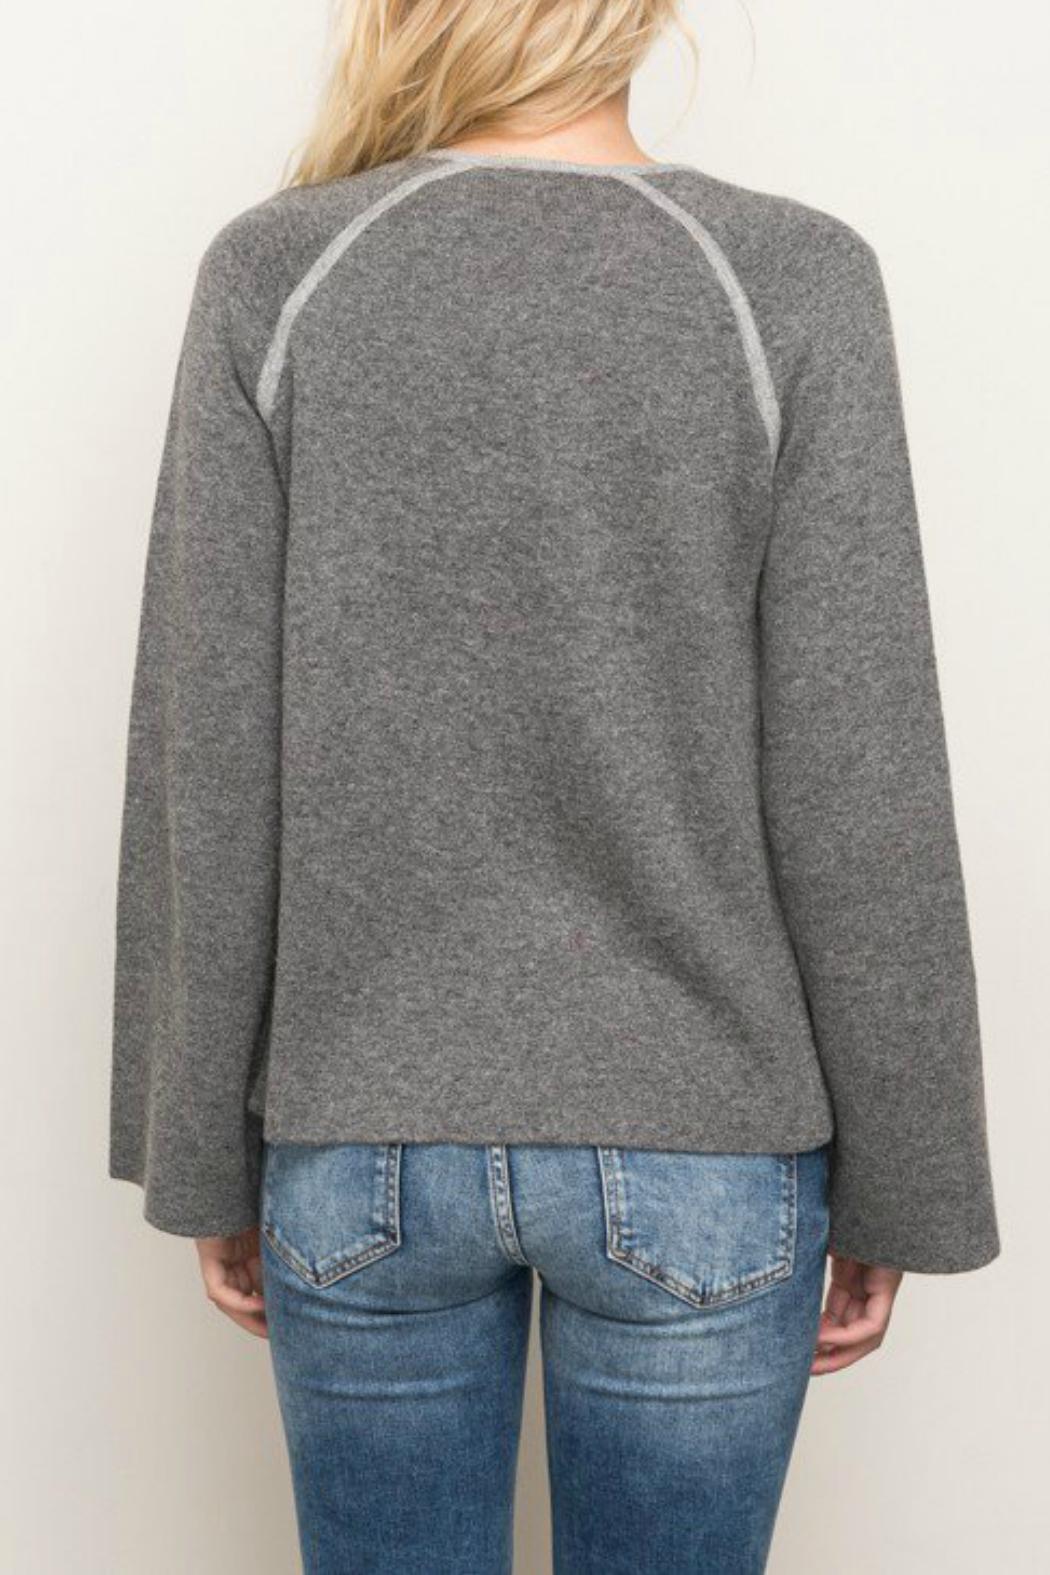 Mystree Contrast Sweater Cardigan - Side Cropped Image